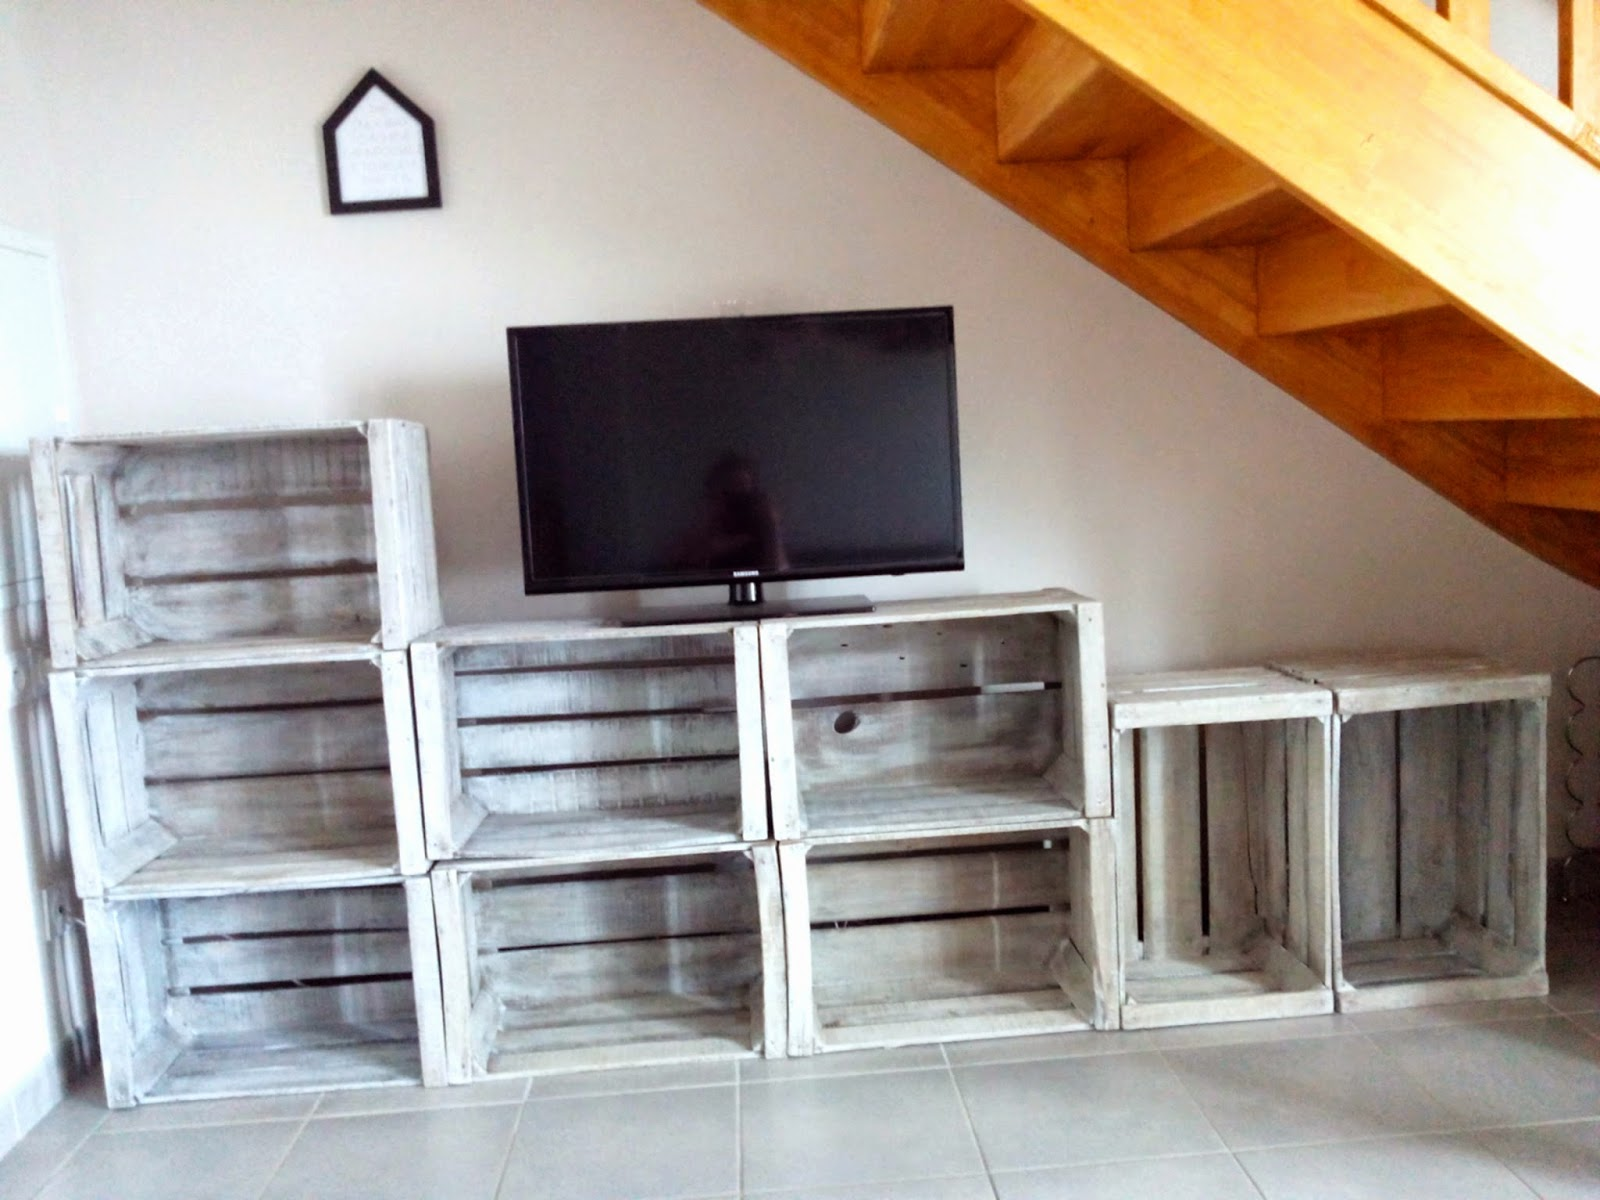 meuble tv cagette av26 jornalagora. Black Bedroom Furniture Sets. Home Design Ideas